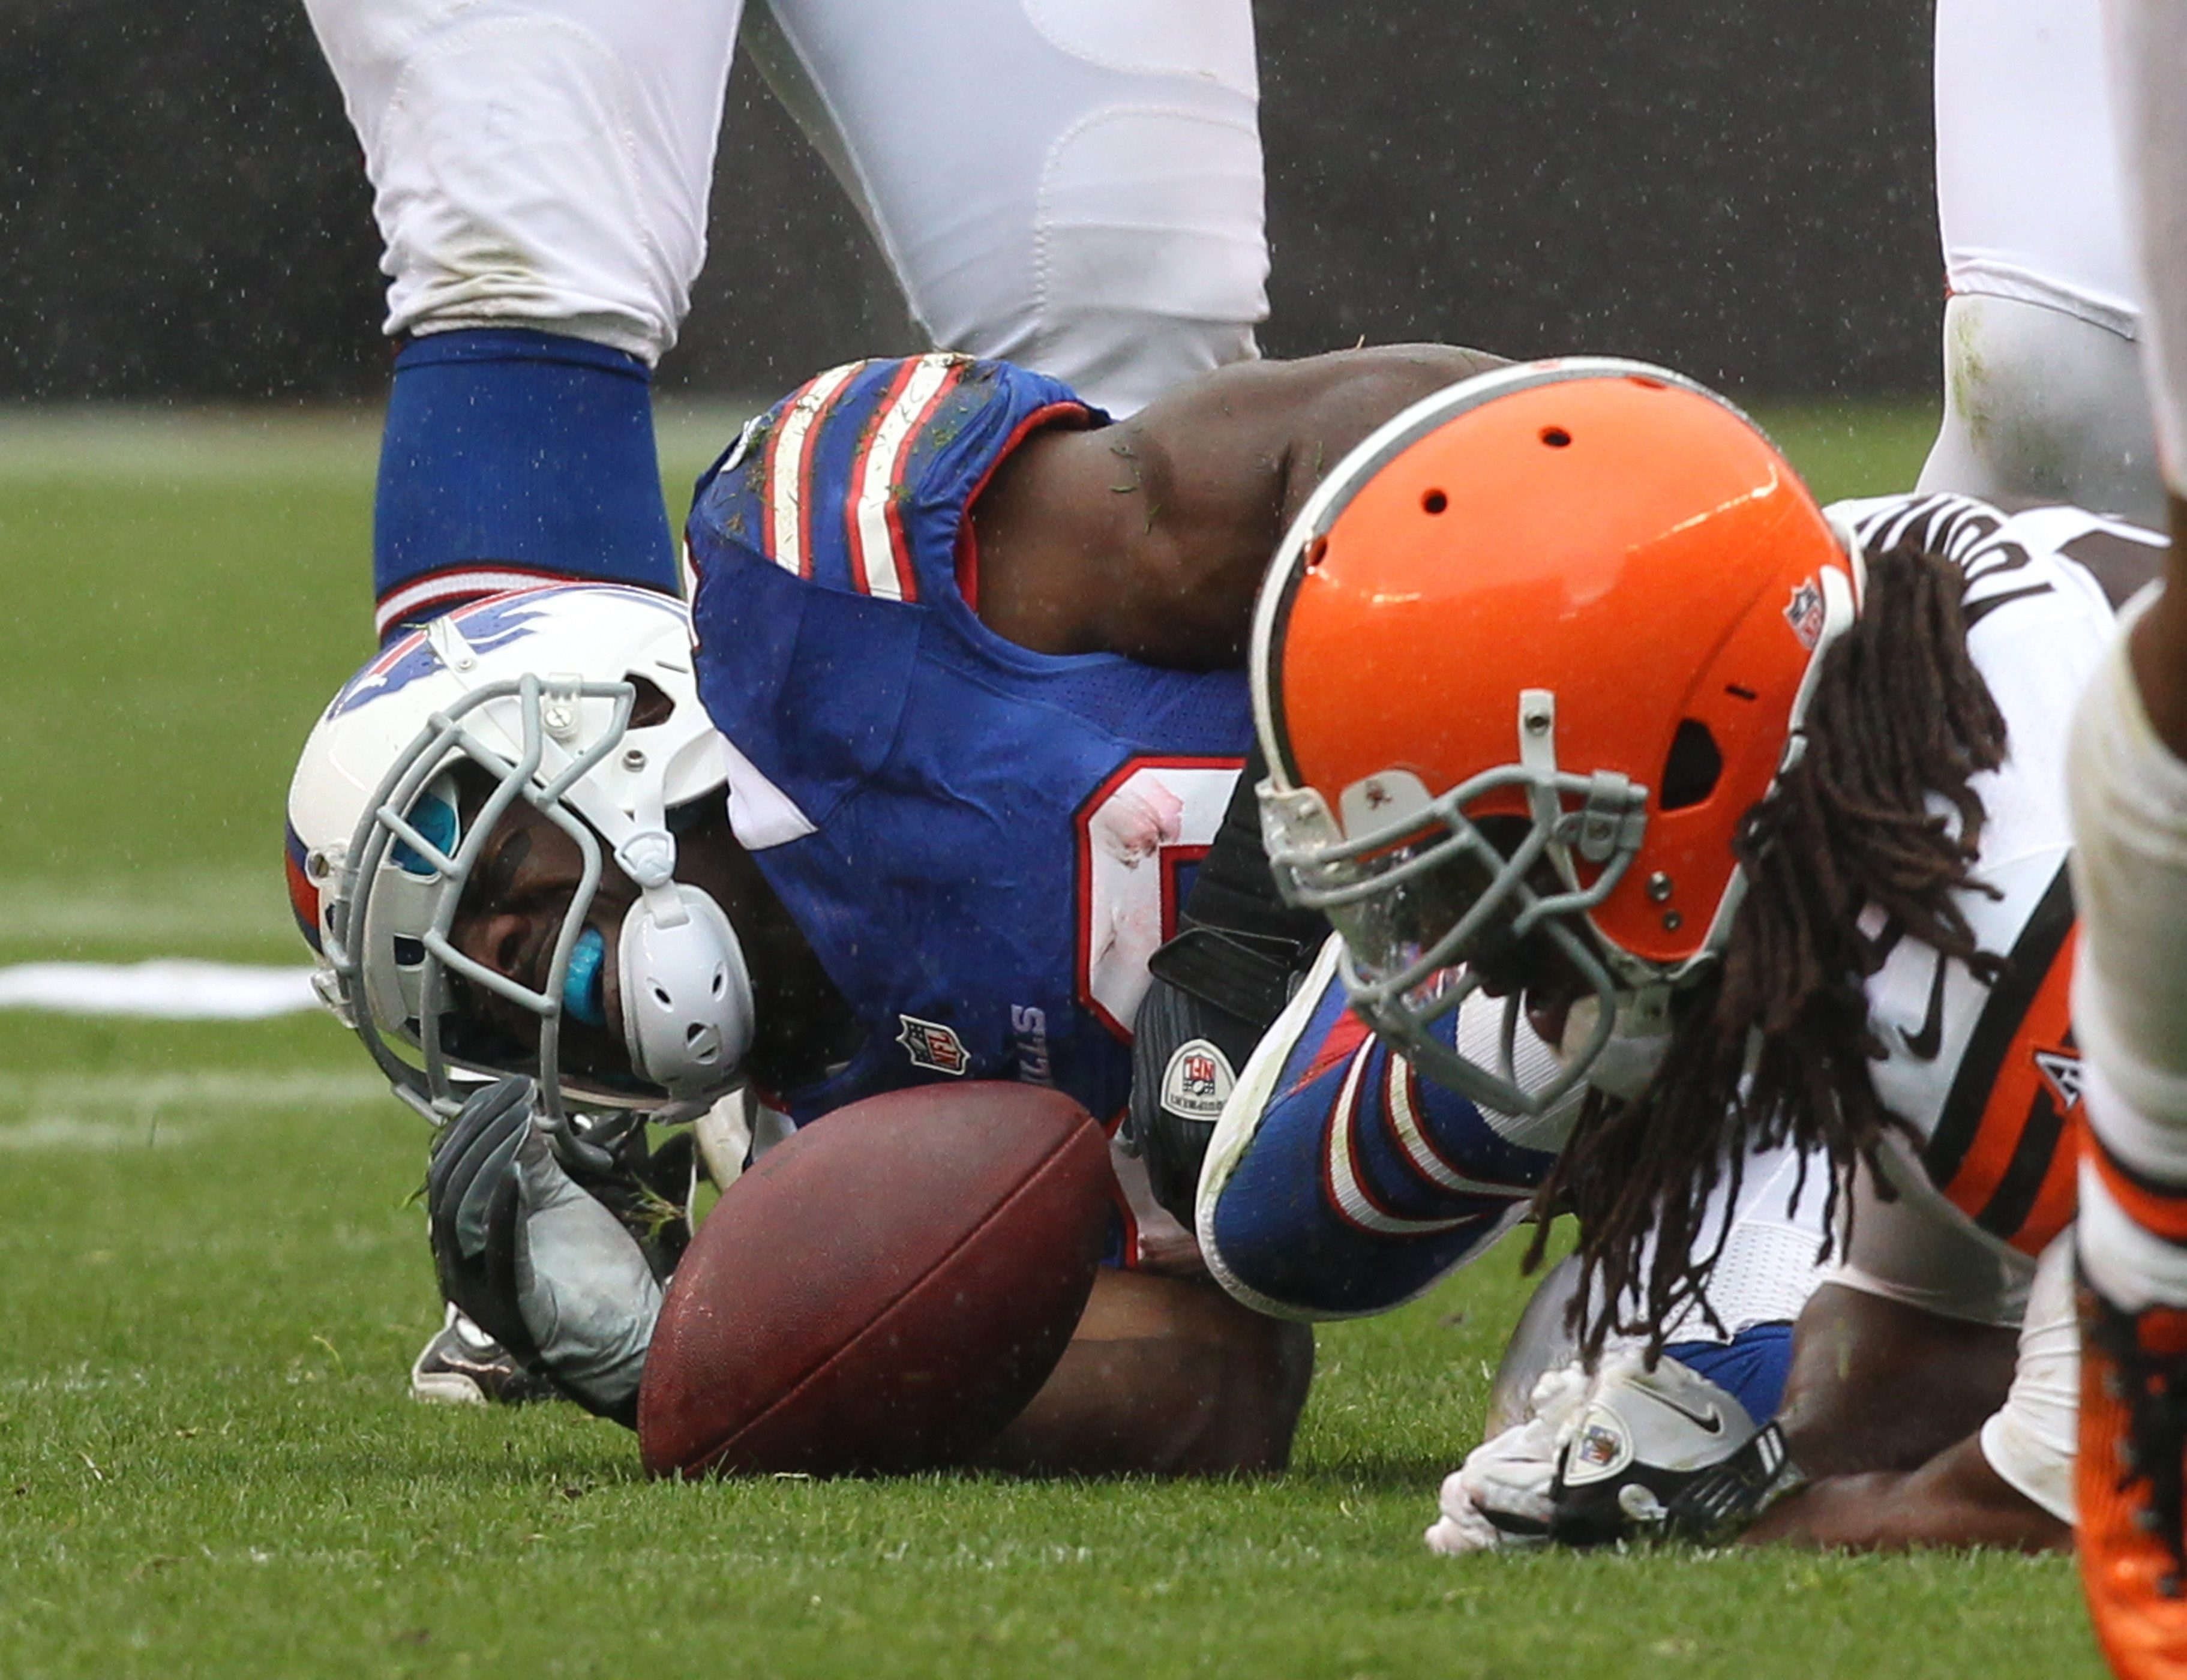 James P. McCoy / Buffalo News    Buffalo Bills running back C.J. Spiller suffered a shoulder injury when tackled at the end of a long run in the first quarter.